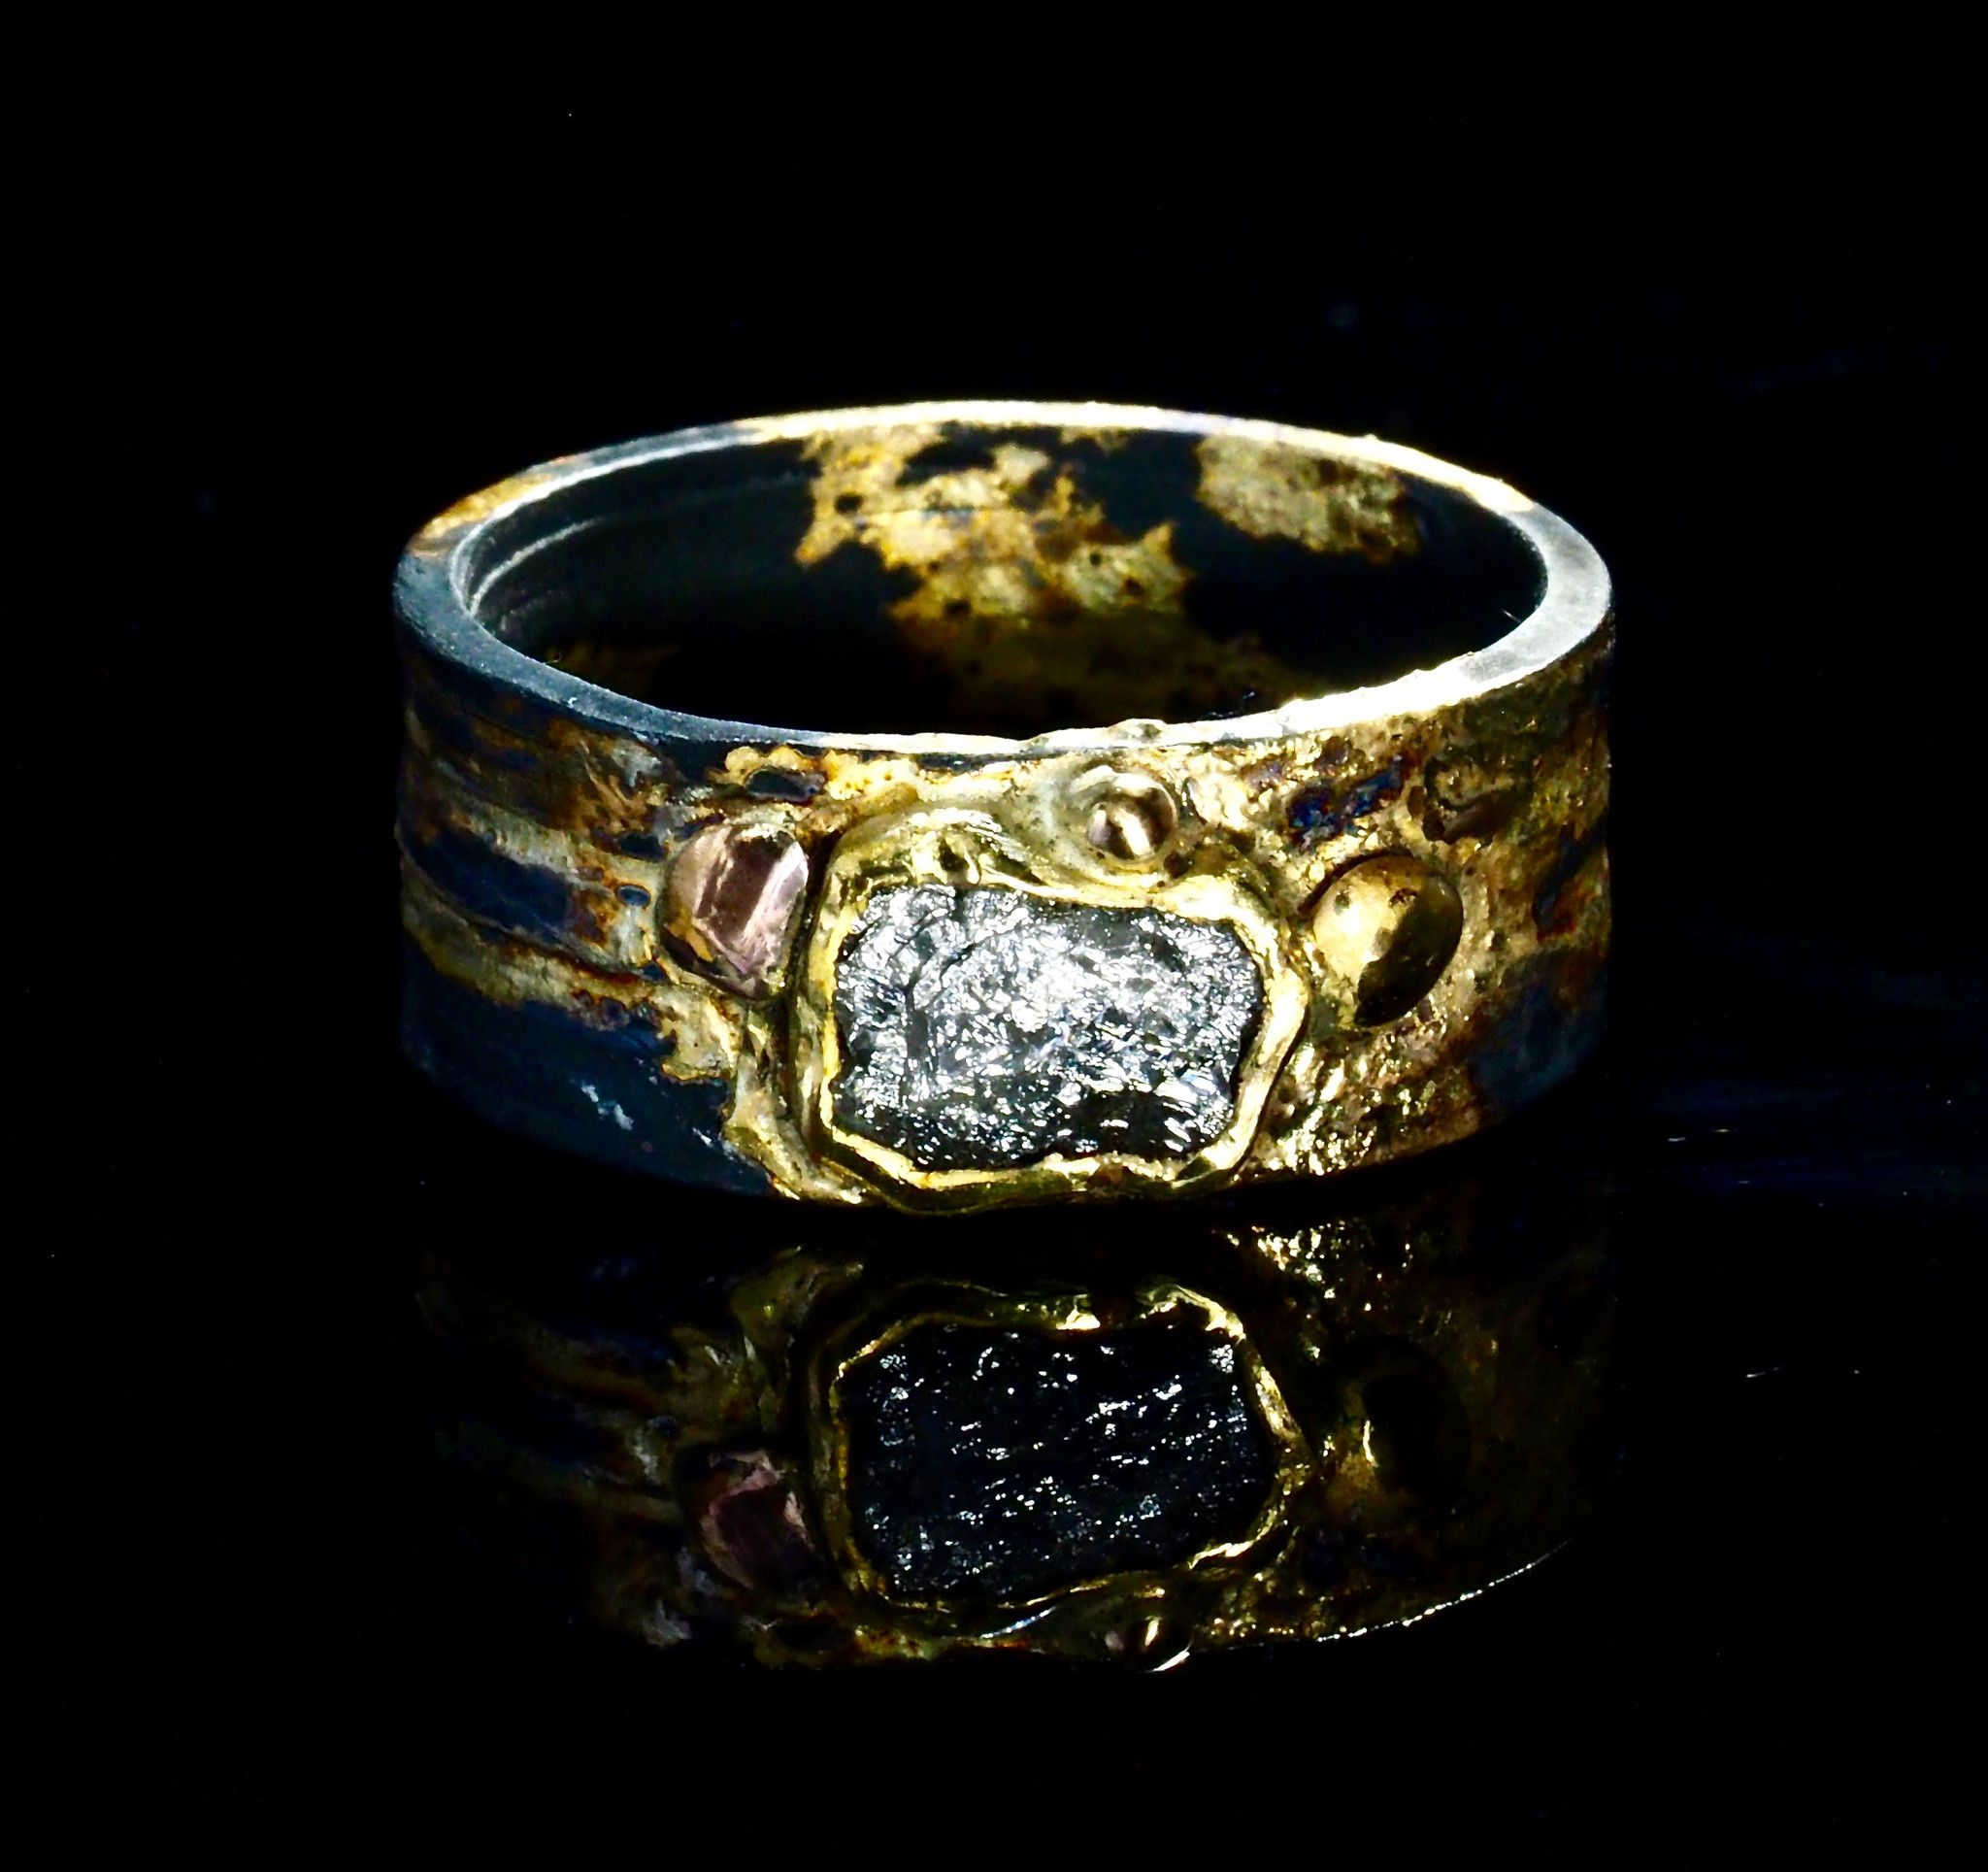 with diamond surrounding engagement raw a layered the an rings pin large it is gold ring shank silver best and bezel oxidized set in boulders